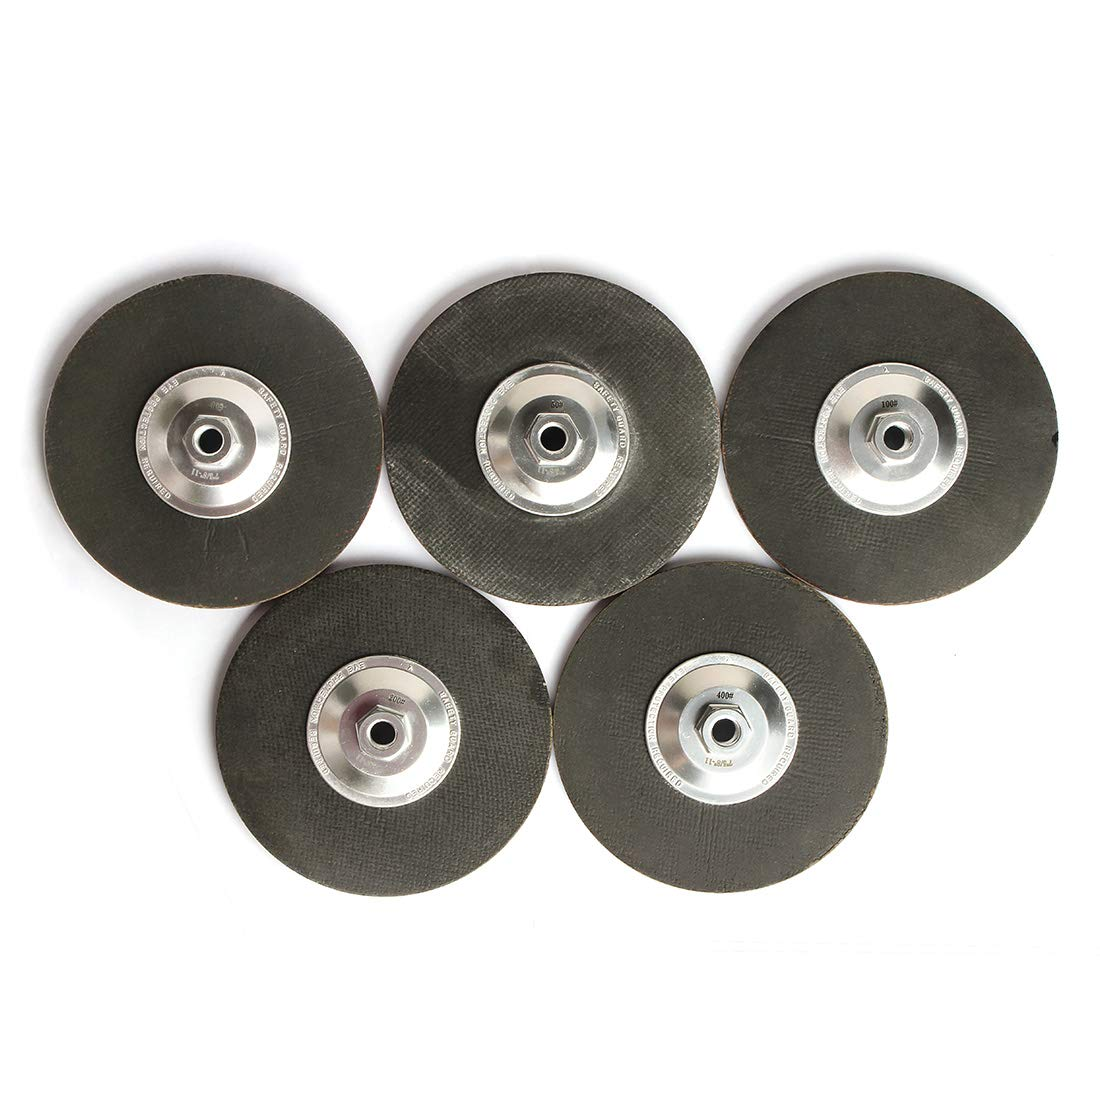 7 Inch Ceramic Diamond Cup Grinding Wheels with 5//8-11 Arbor for Smoothing Out Concrete Edge